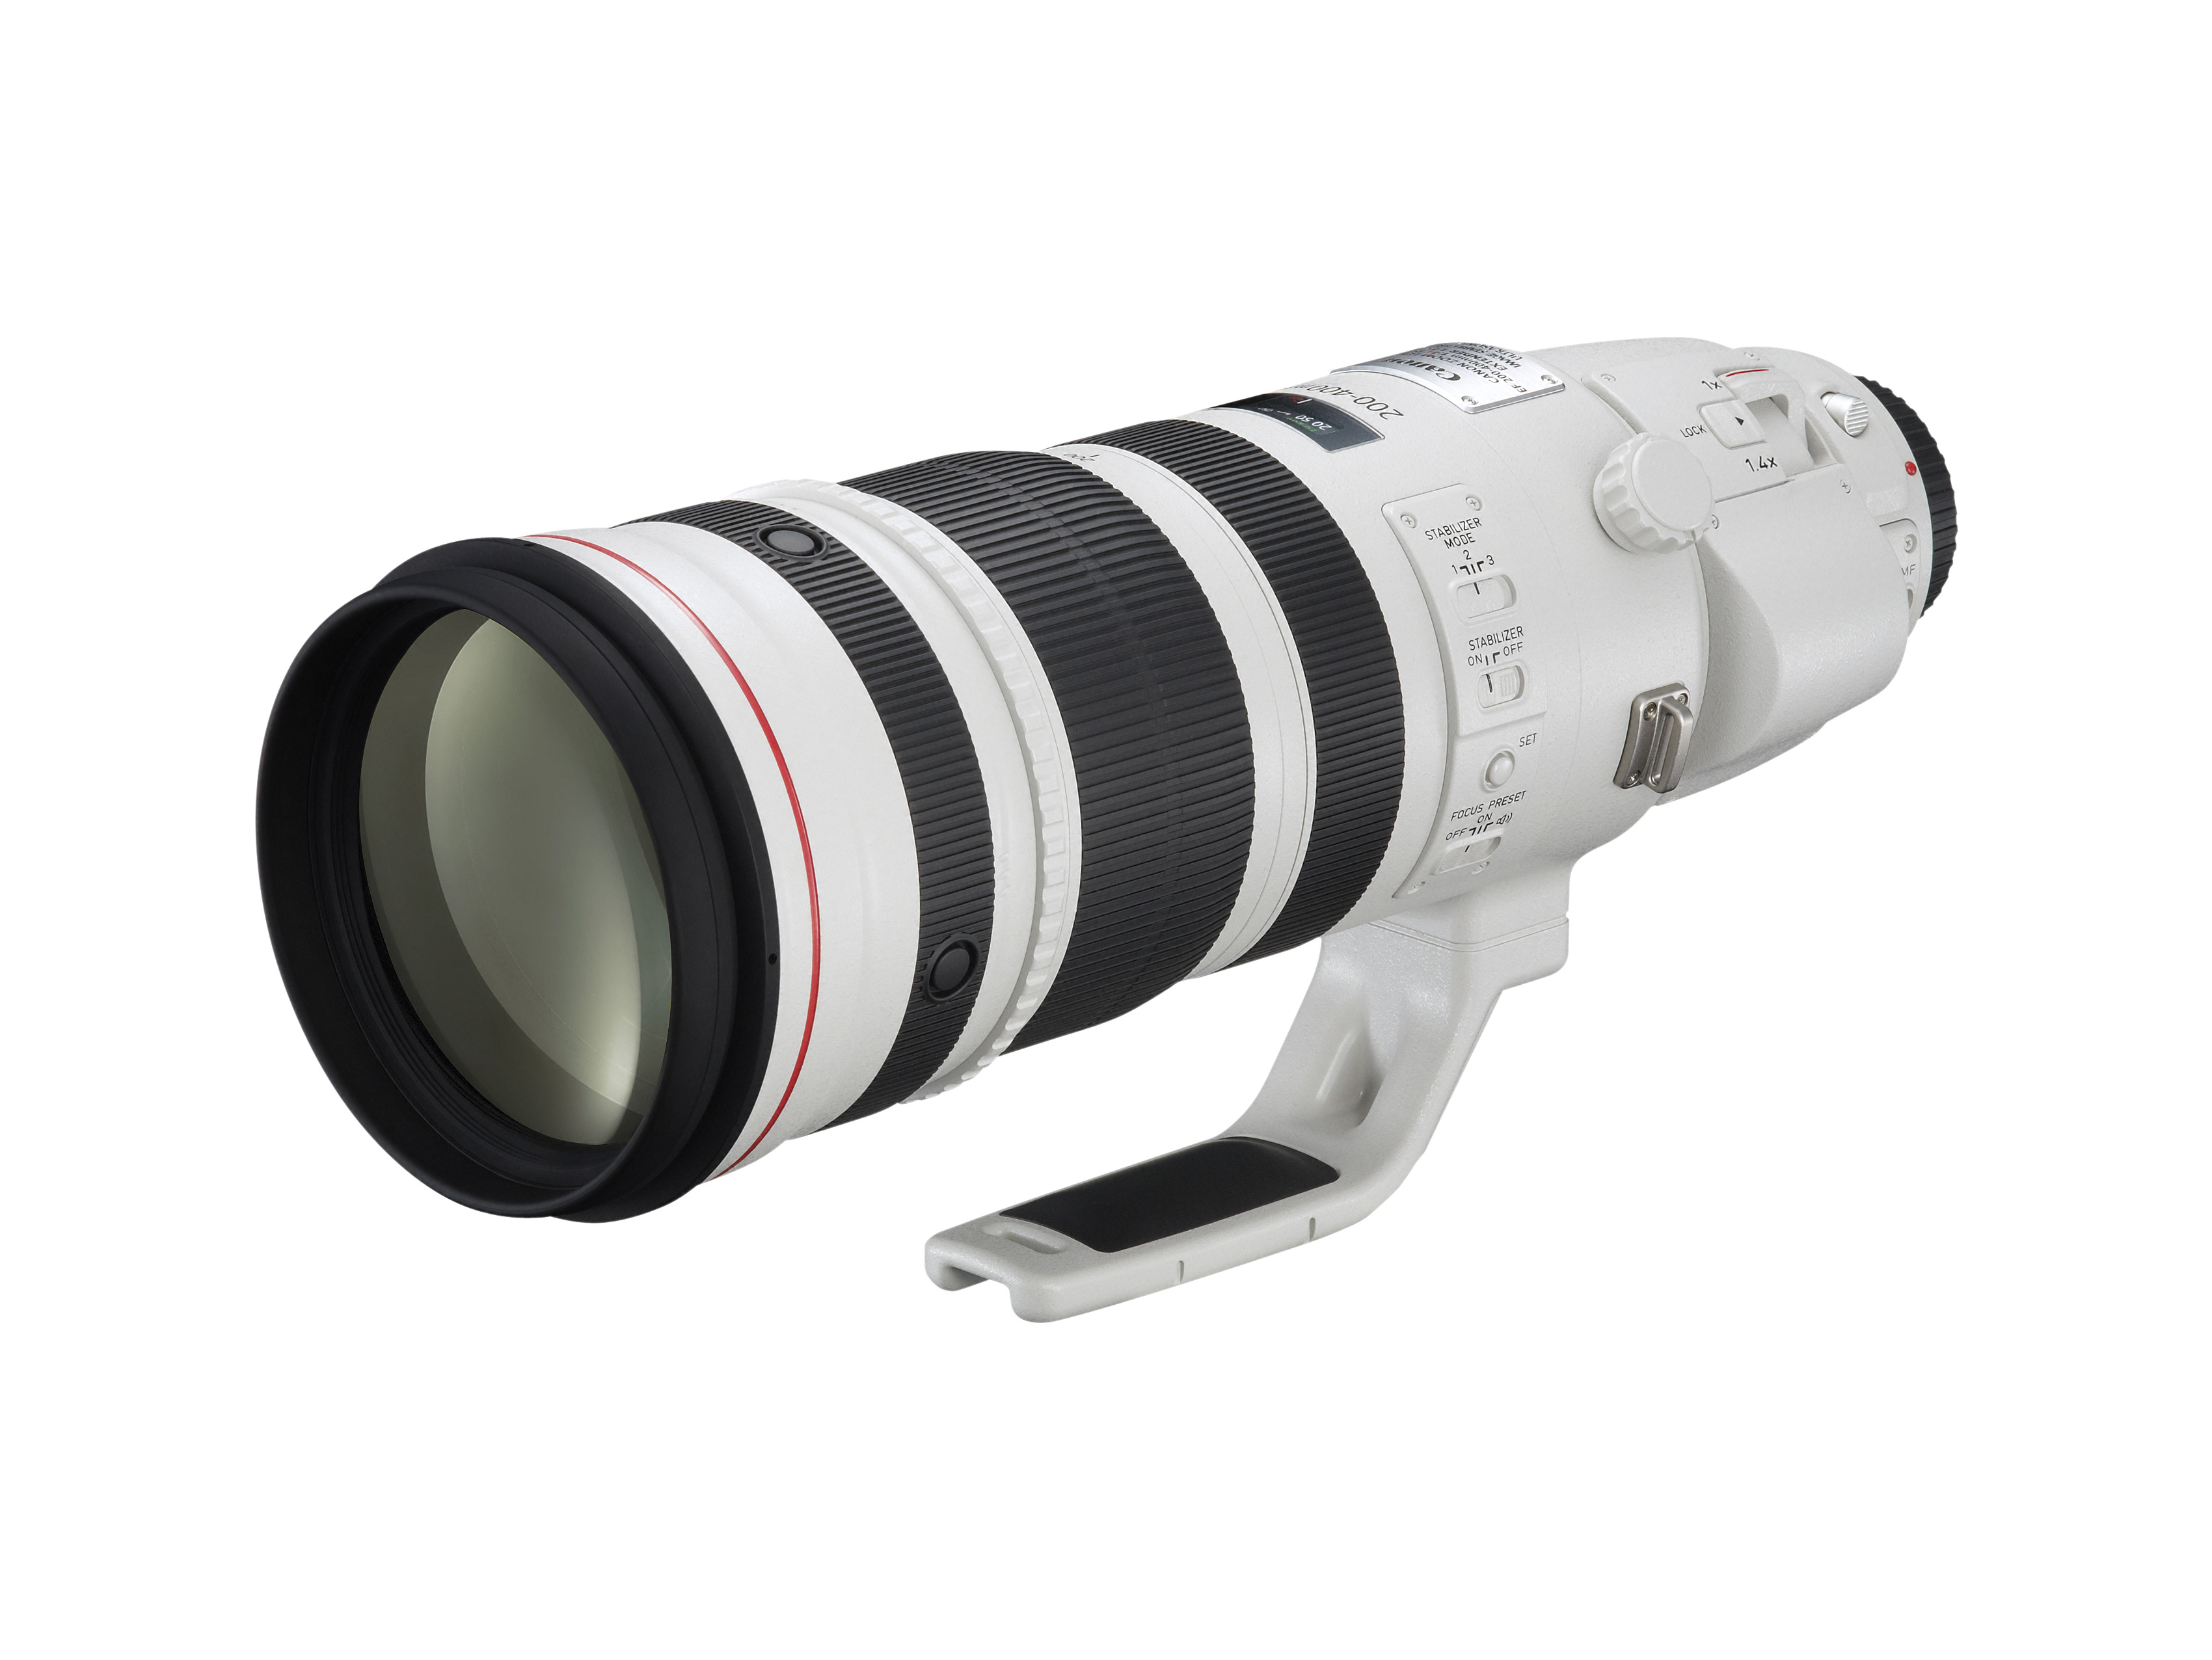 Canon EF 200-400mm F4 L IS 1.4x